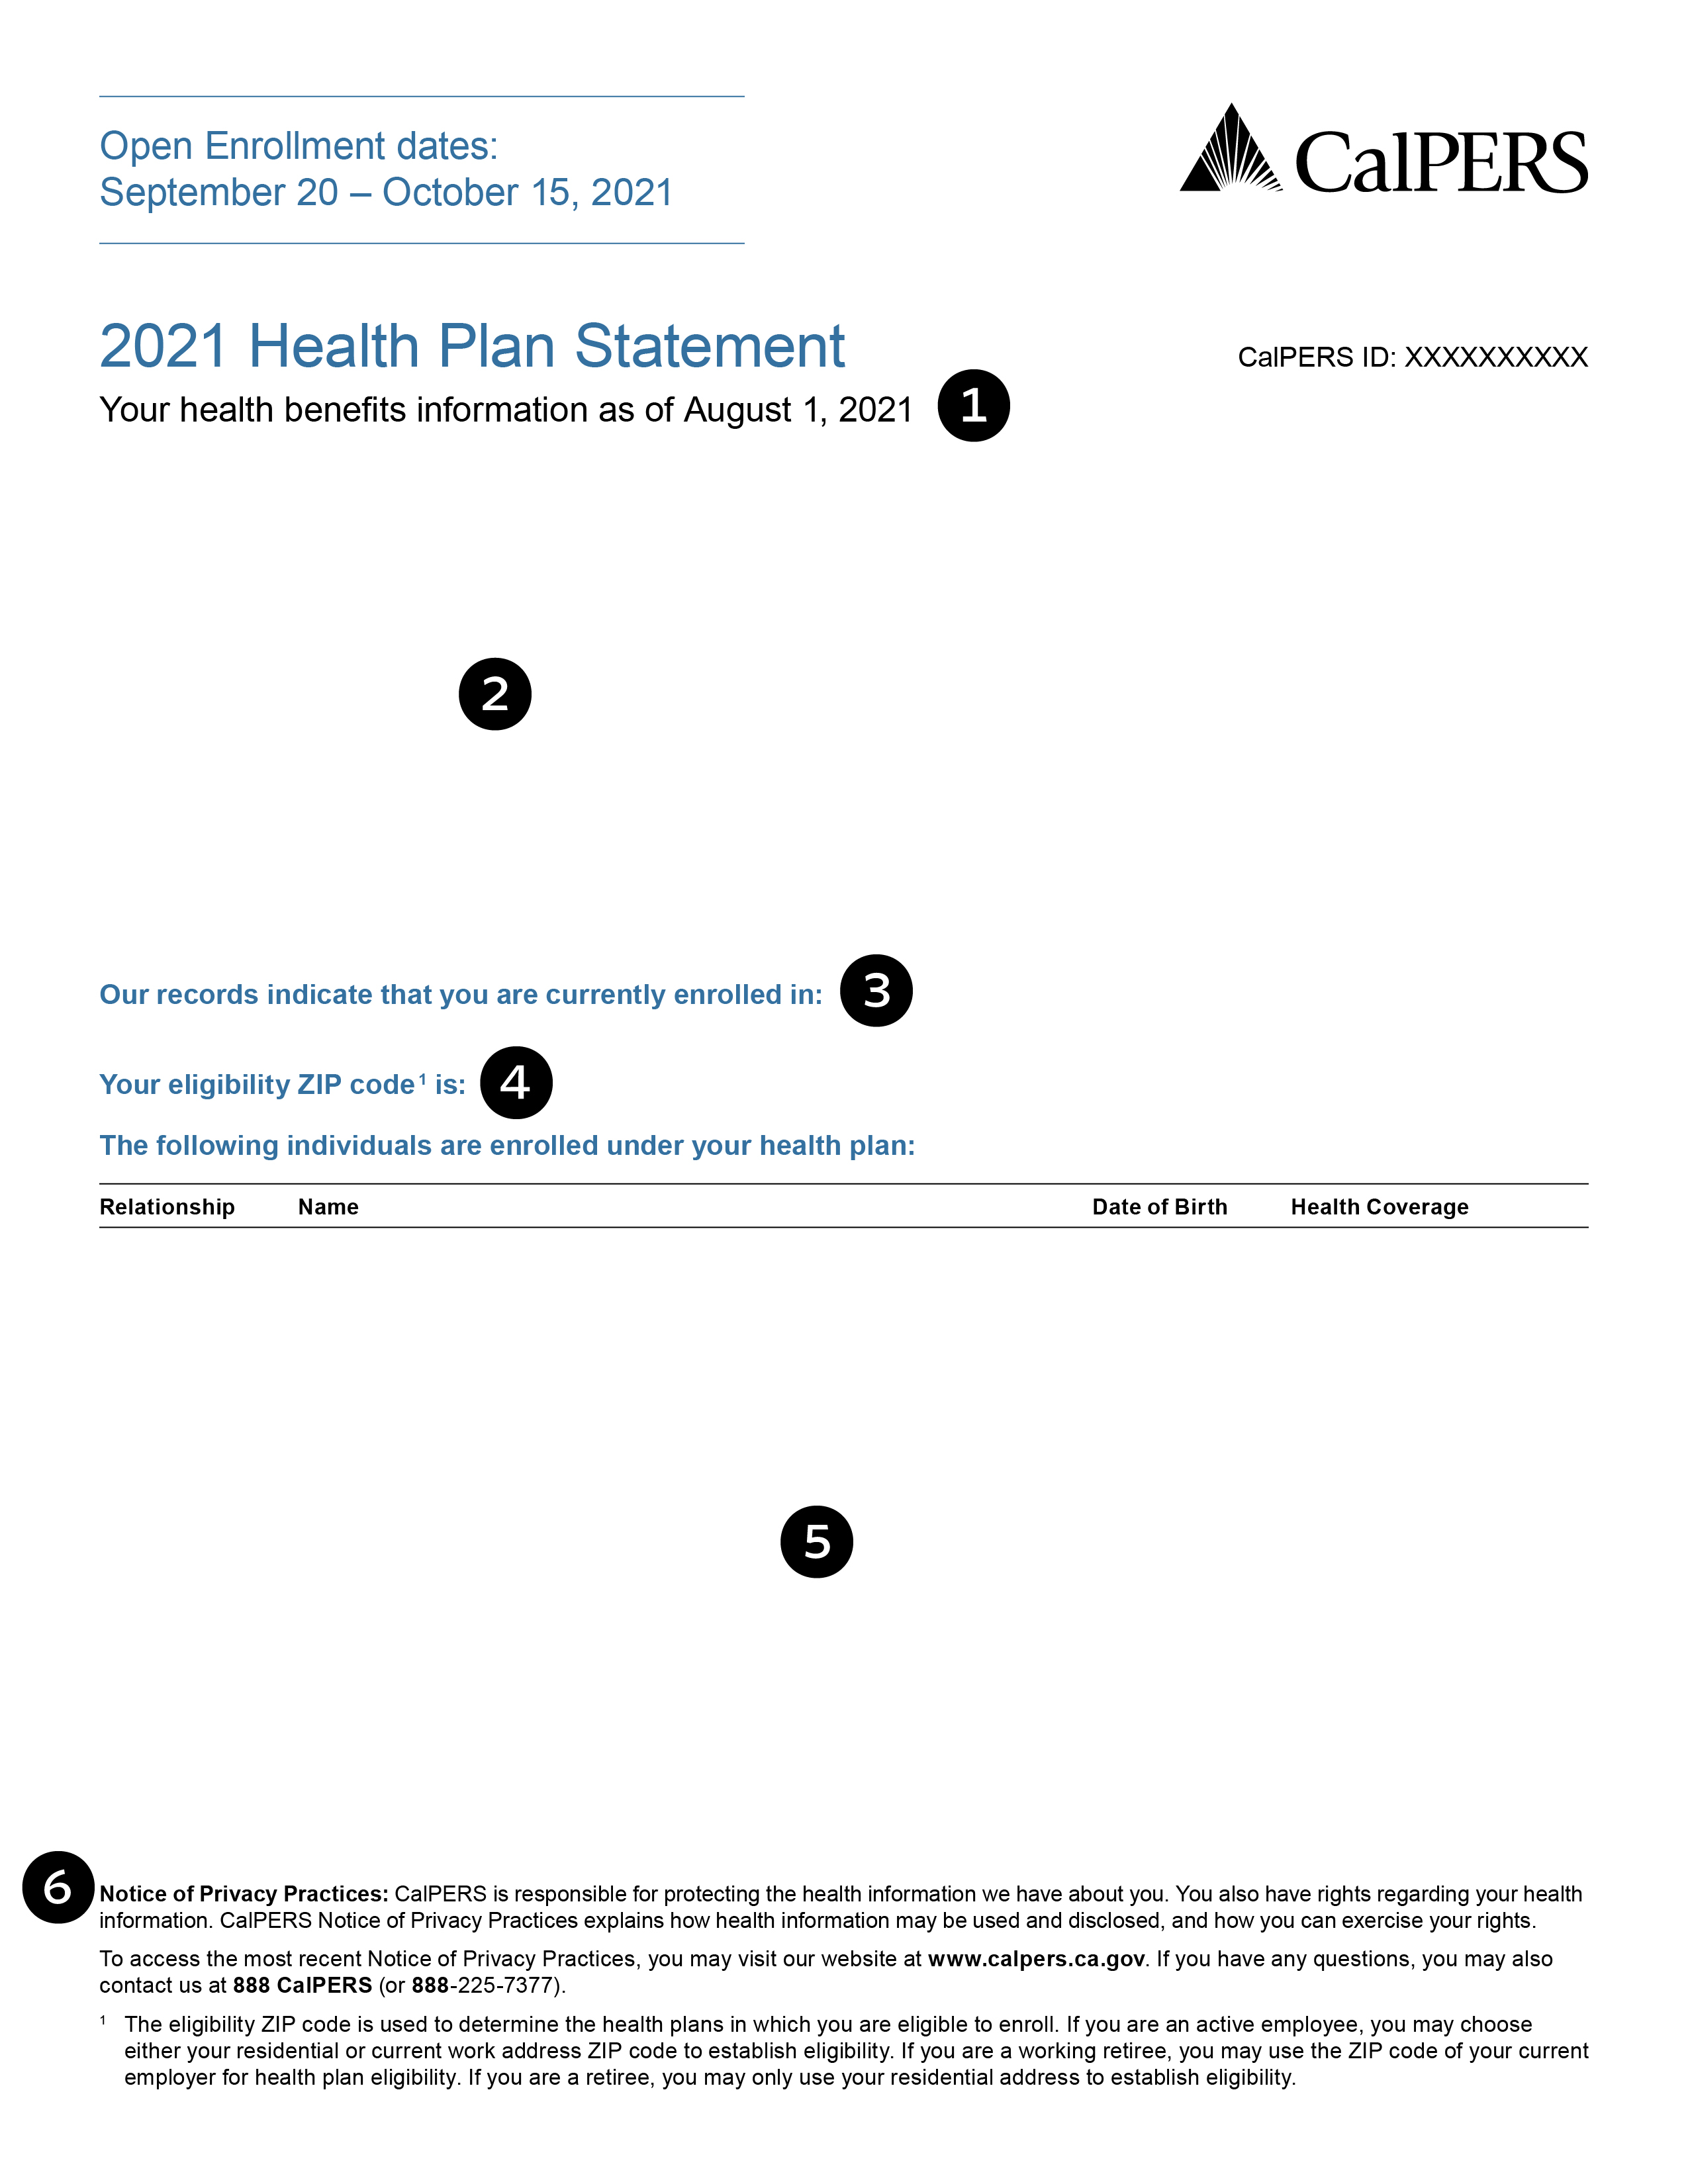 Health Plan Statement, Page 1